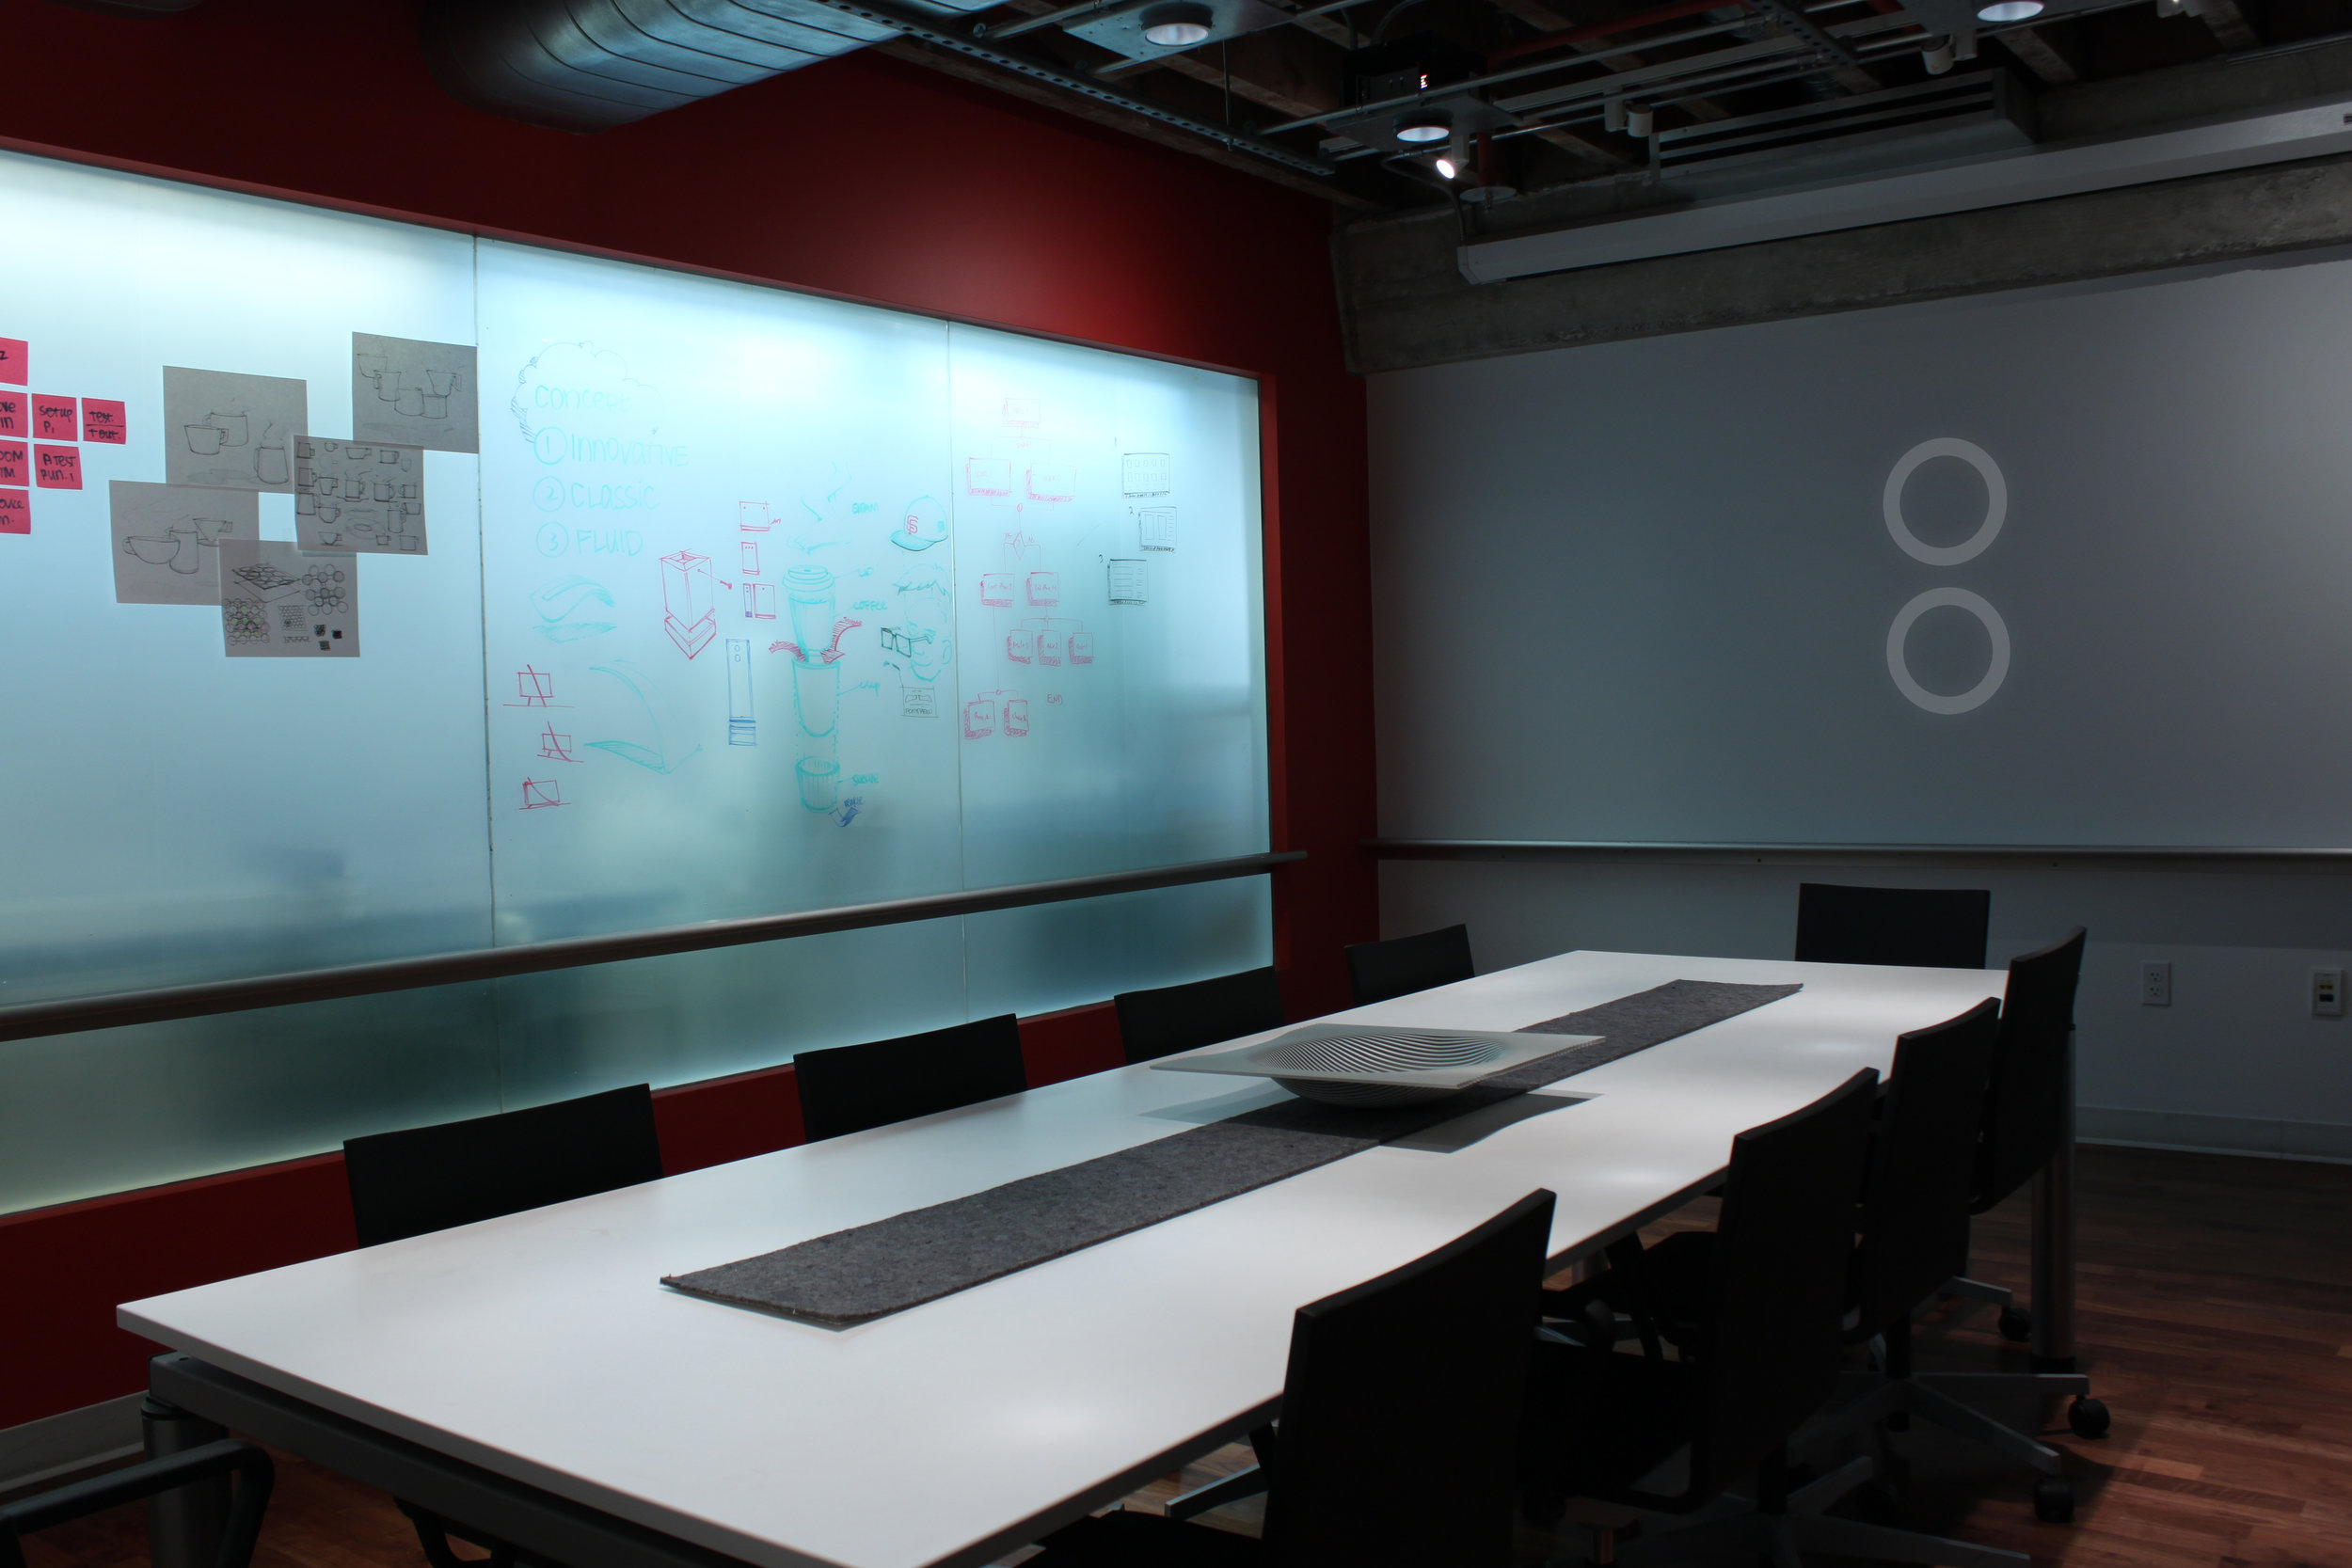 conf room with logo.jpg